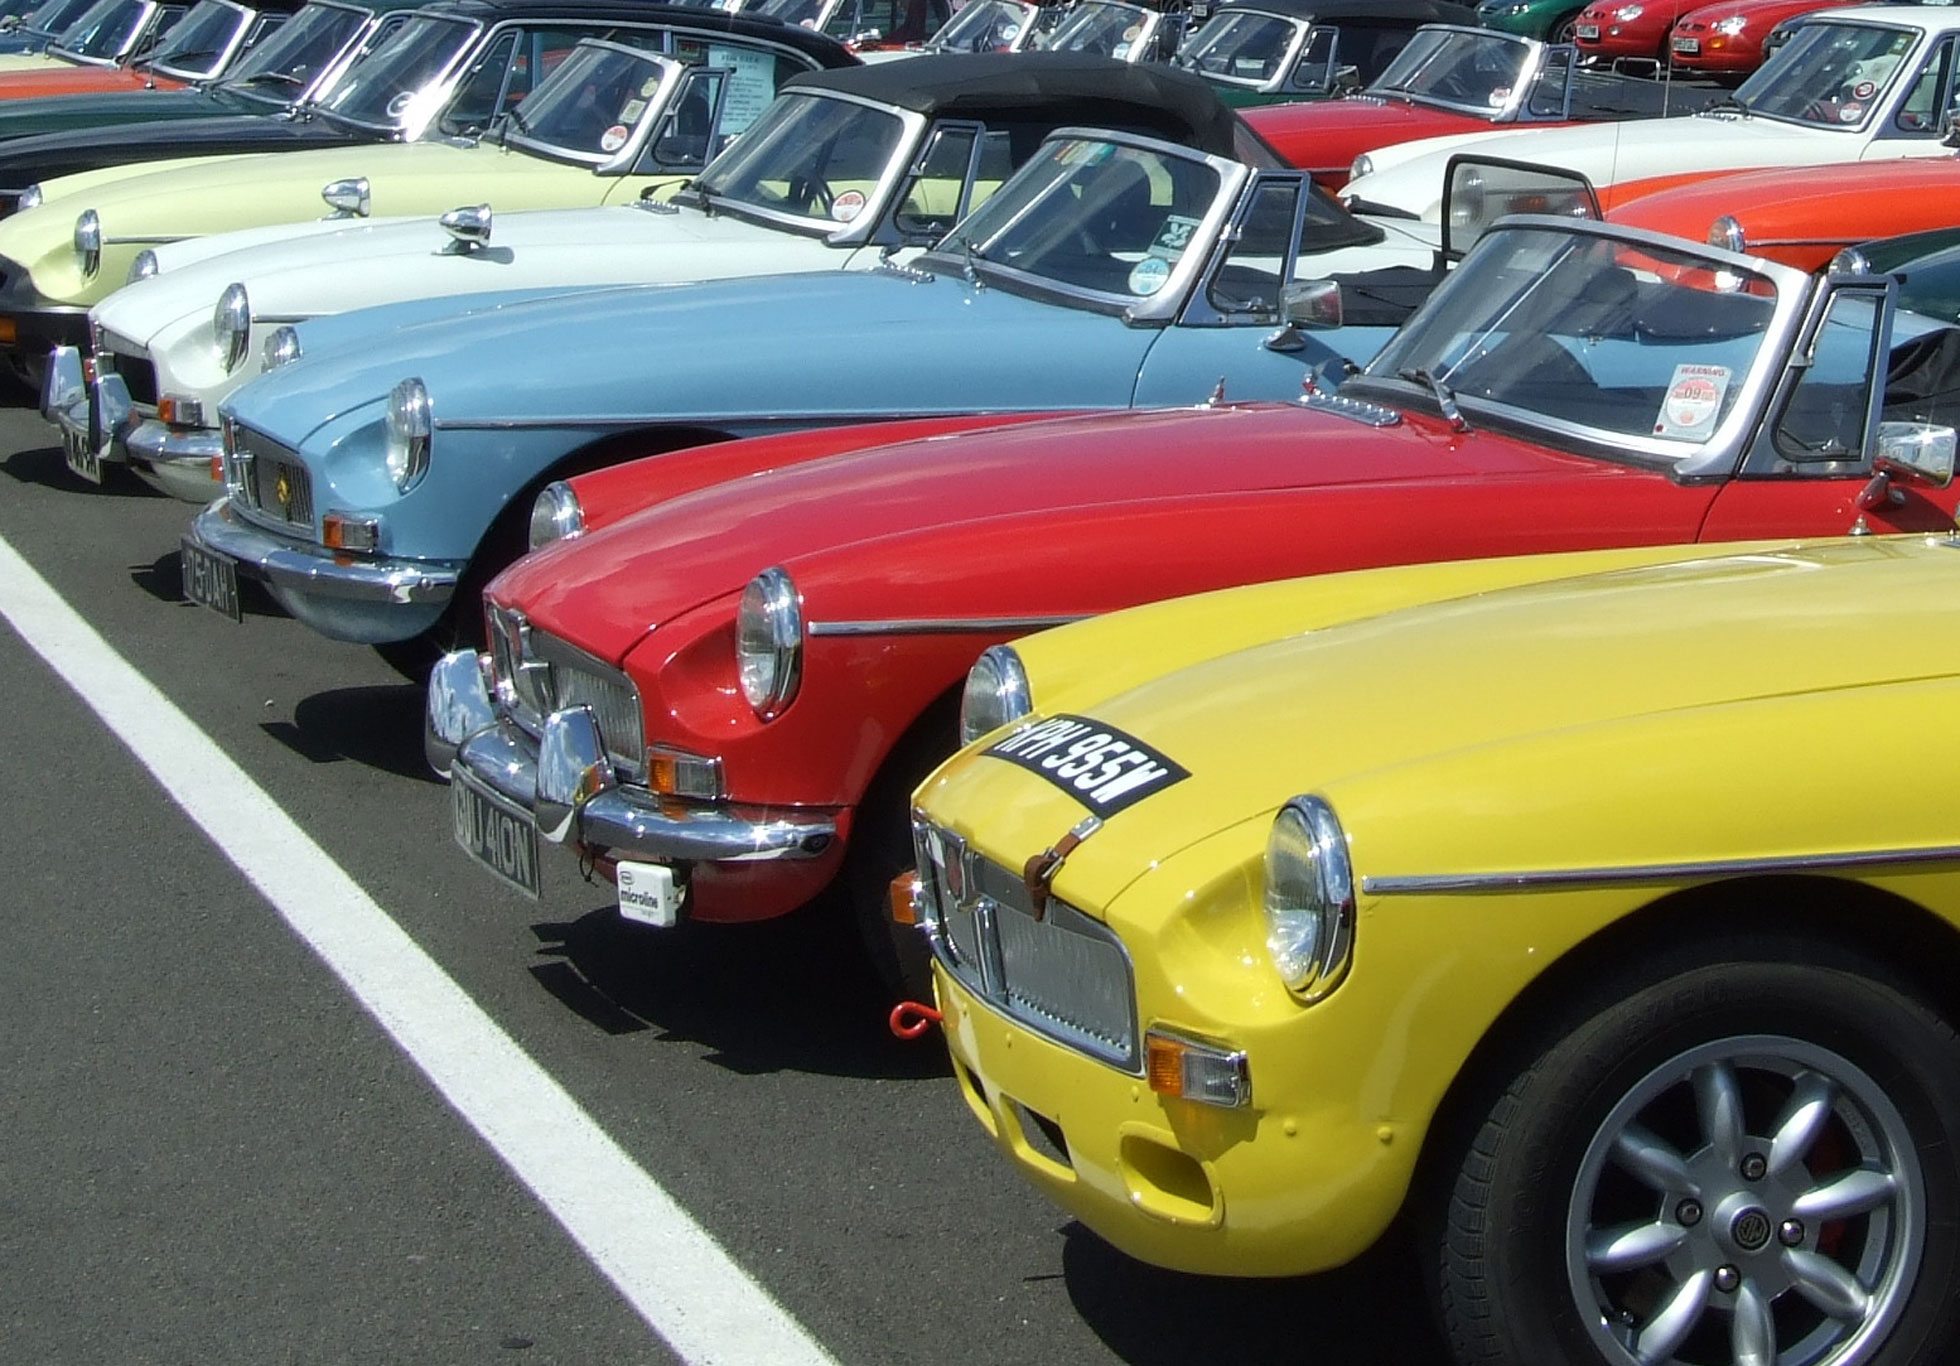 UKIP pledges to scrap road tax for classic cars